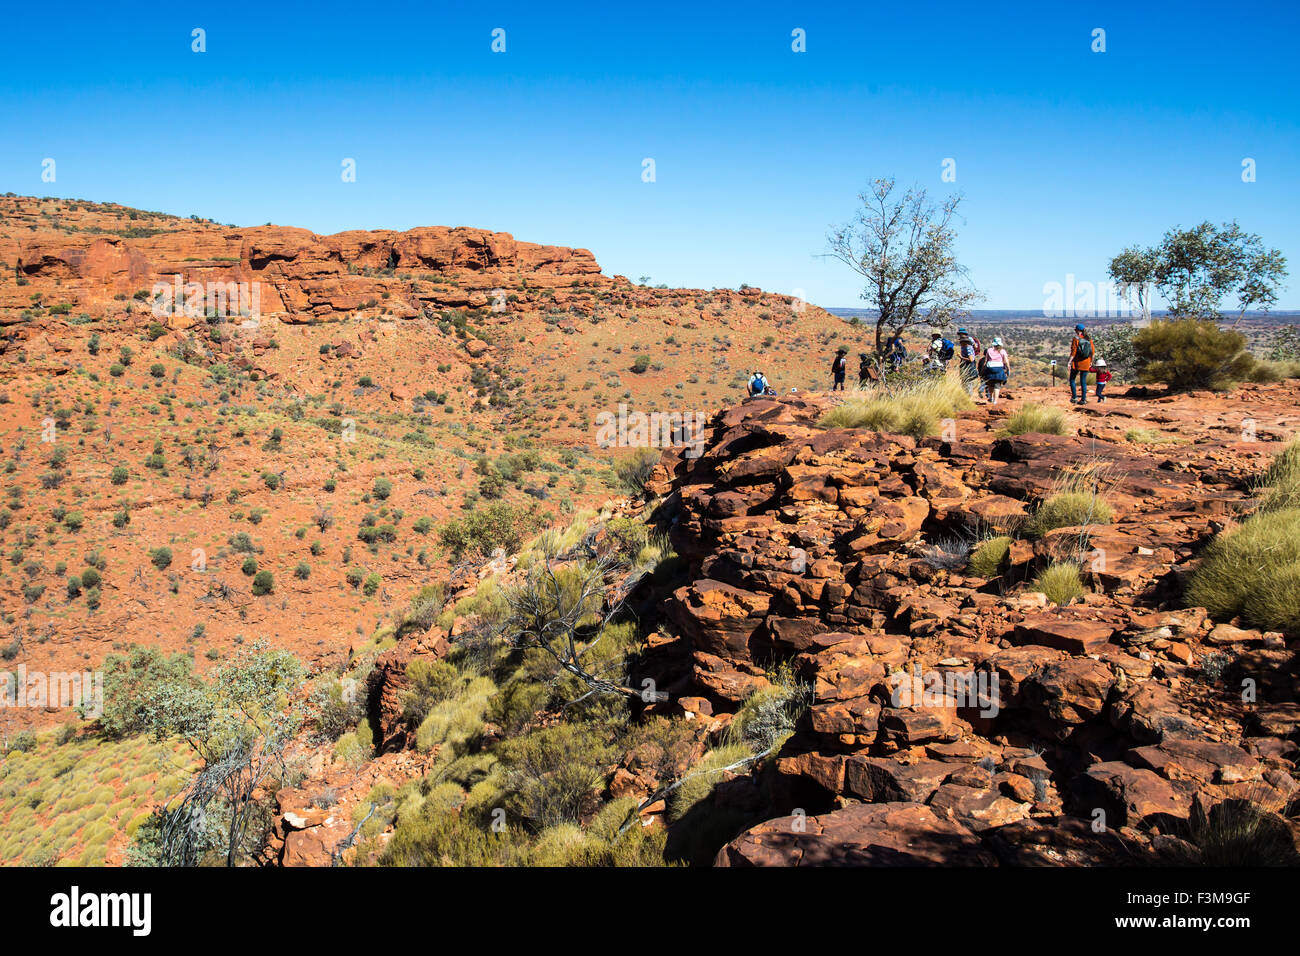 Valley view at Kings Canyon in Northern Territory, Australia Stock Photo